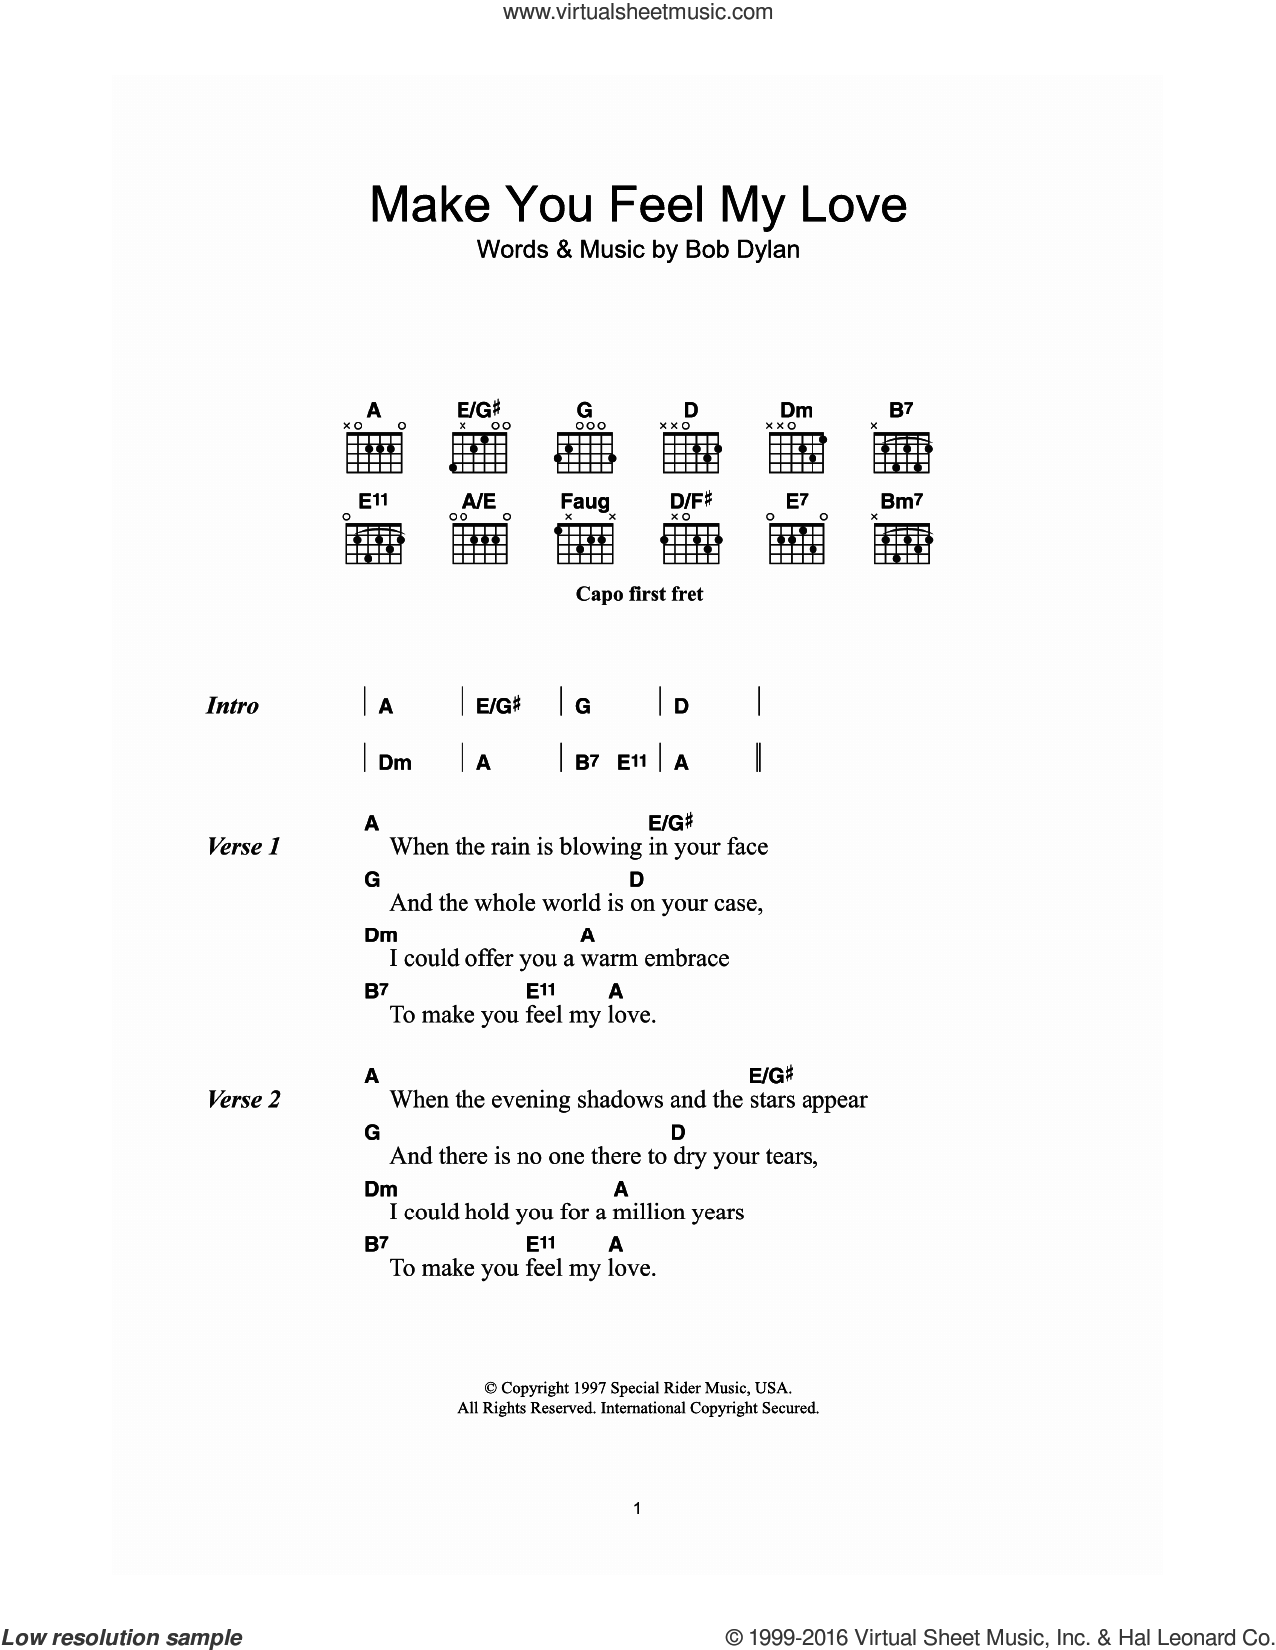 Adele make you feel my love sheet music for guitar chords make you feel my love sheet music for guitar chords by adele and bob hexwebz Image collections